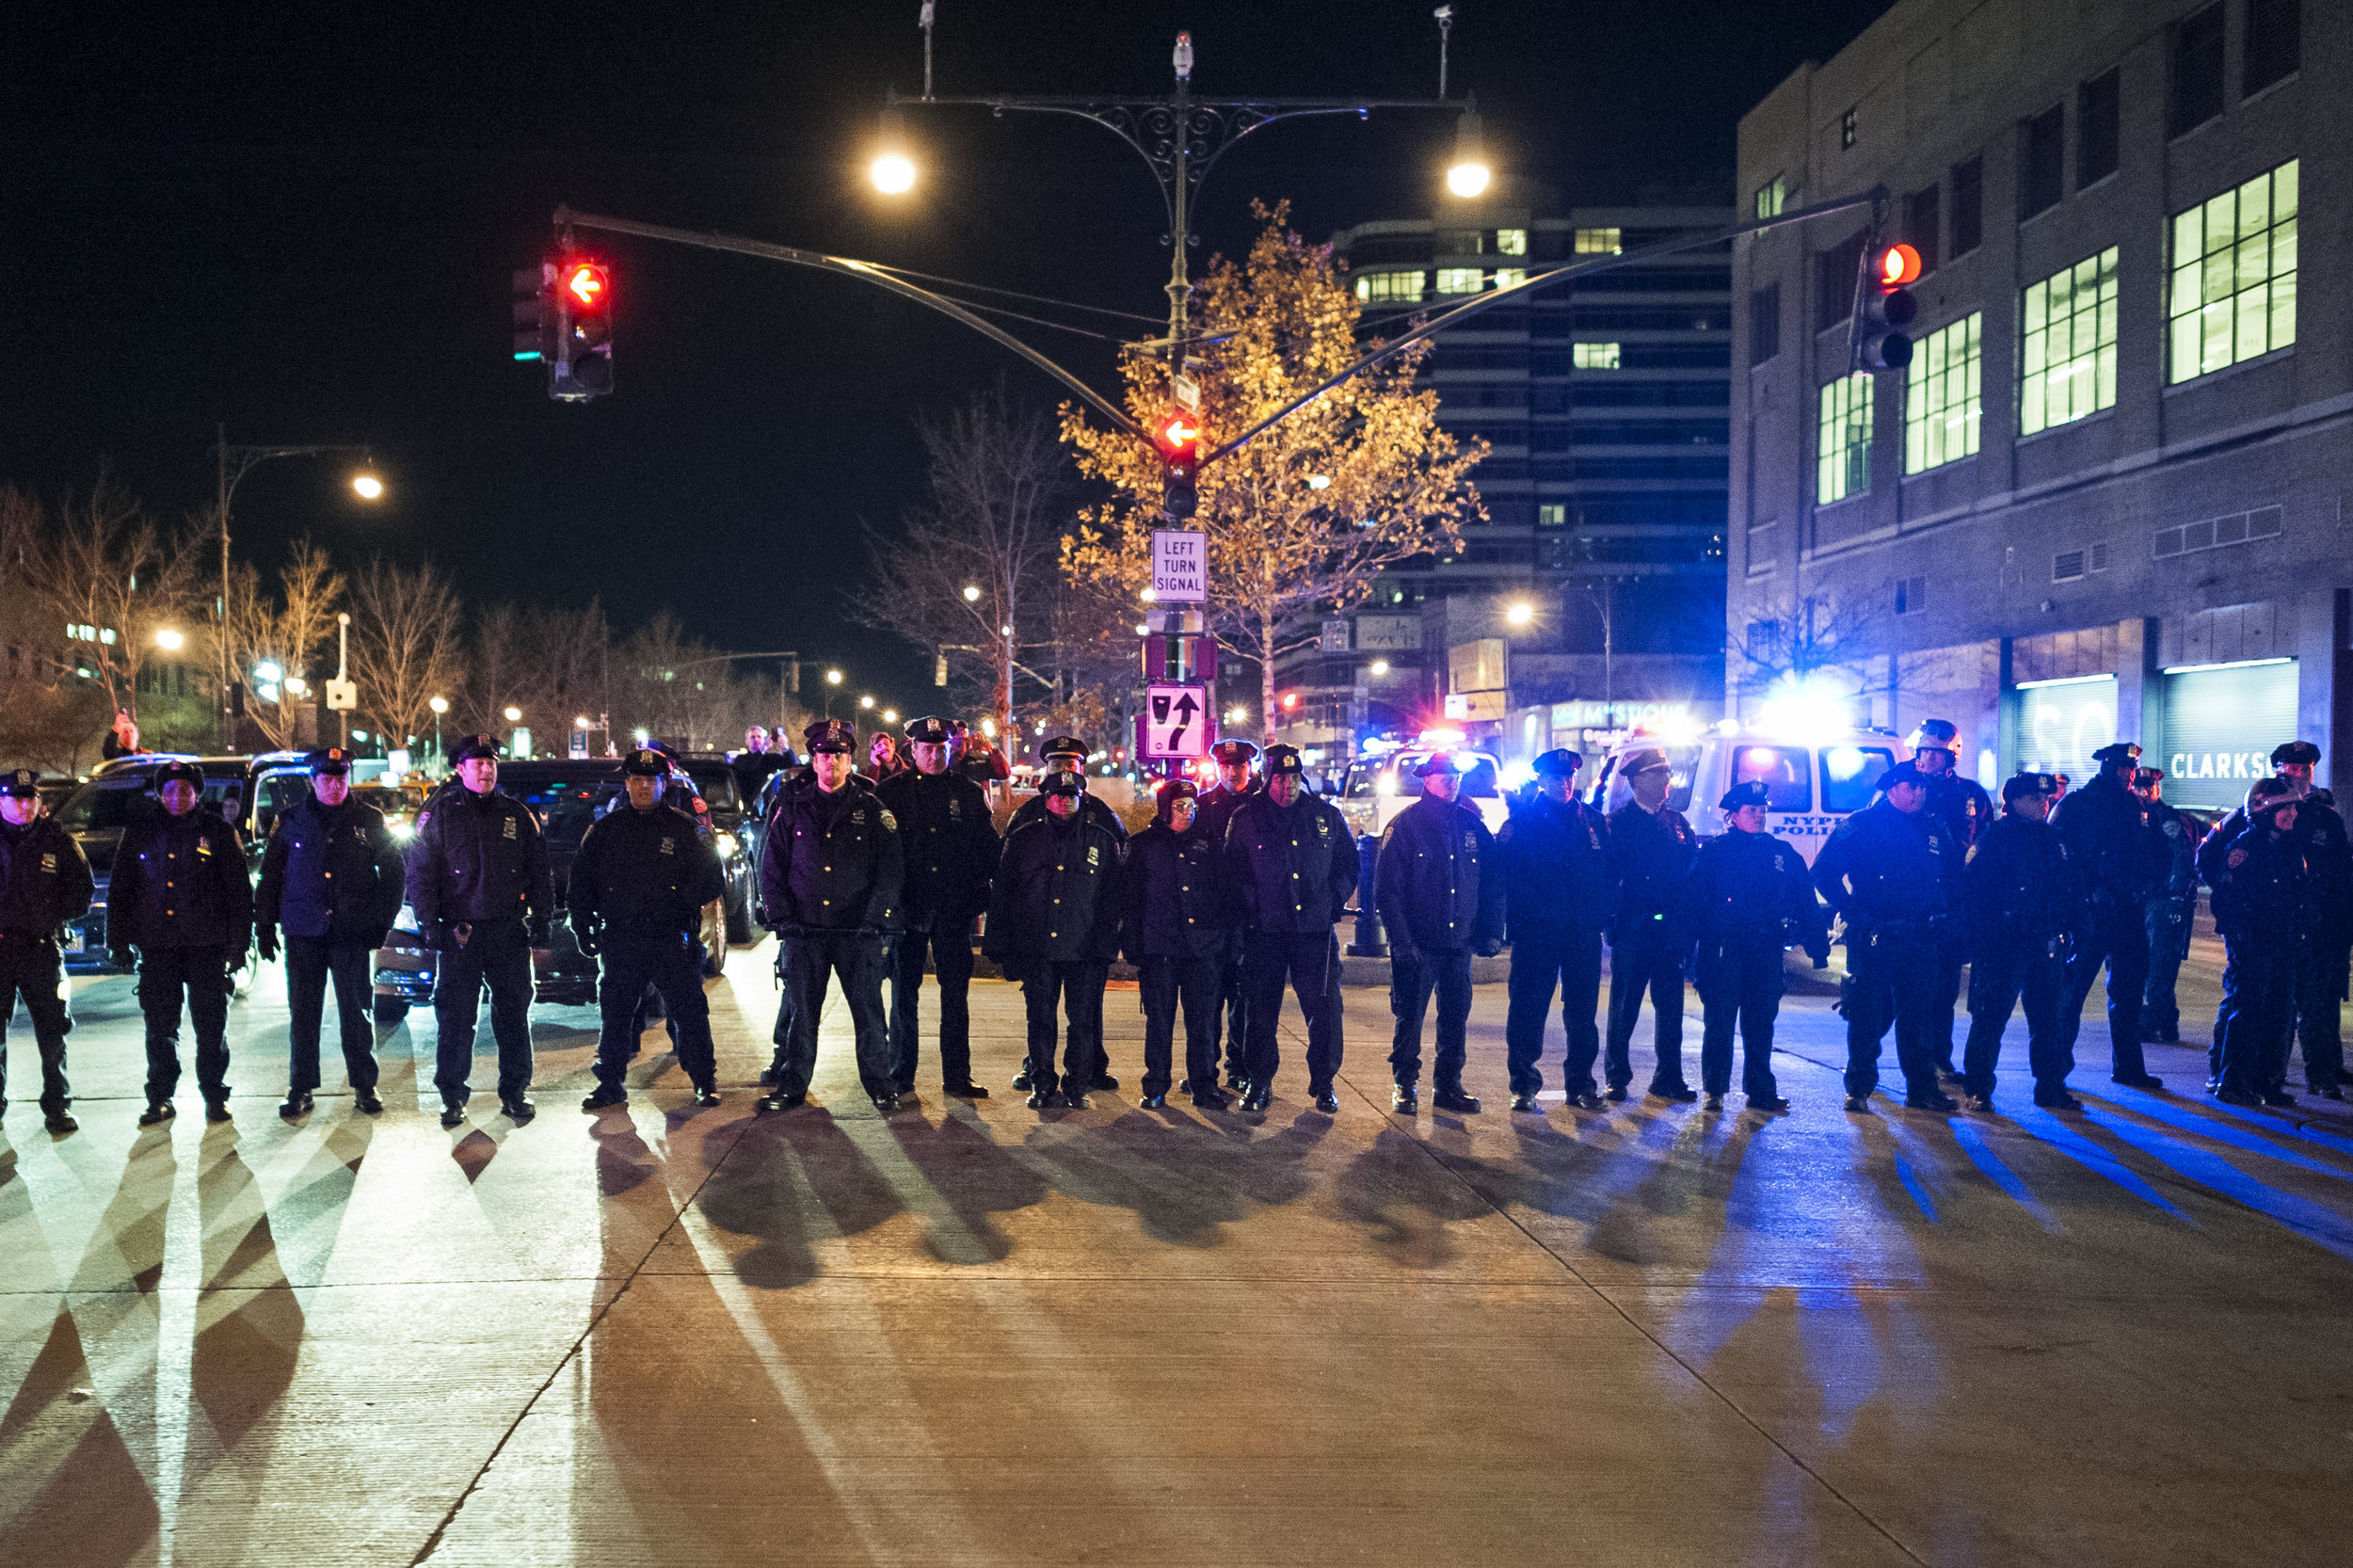 A line of police awaits an oncoming demonstration on the West Side Highway on December 4th, 2014. Weeks of protest followed a Staten Island grand jury's decision on December 3rd 2014 not to indict Officer Daniel Pantaleo in the killing of Eric Garner.